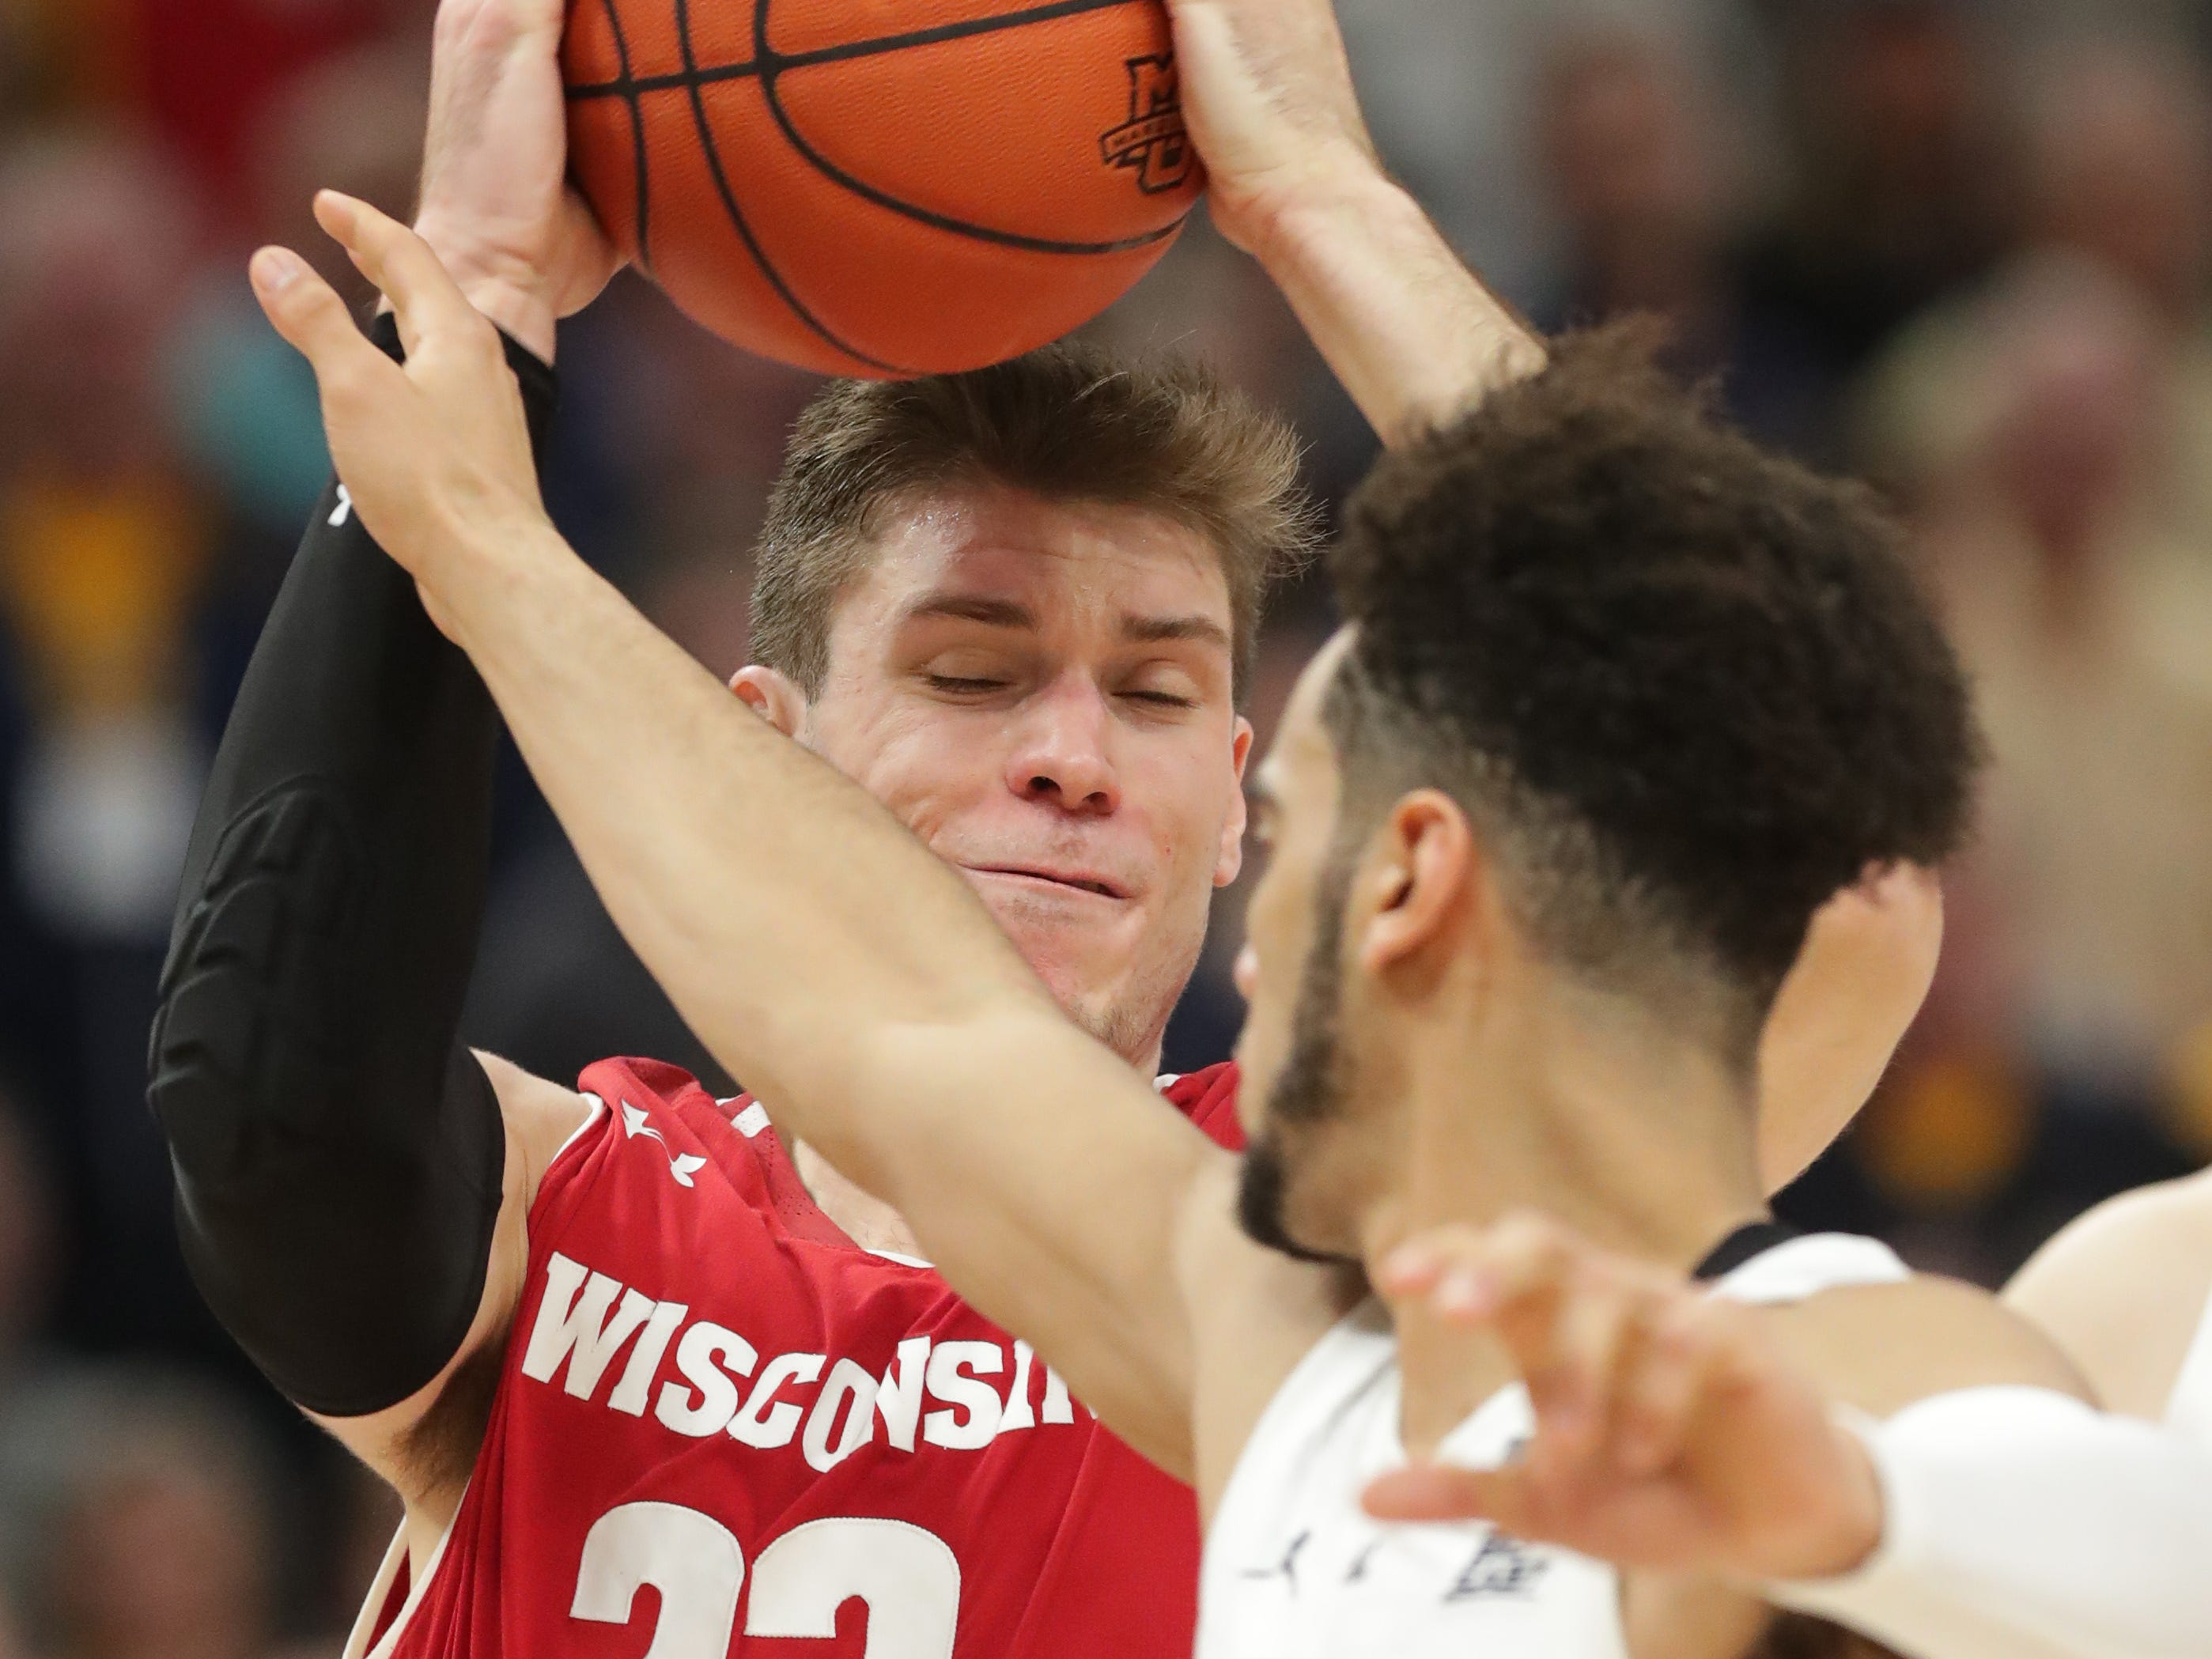 Wisconsin forward Ethan Happ is defended by Marquette guard Markus Howard.